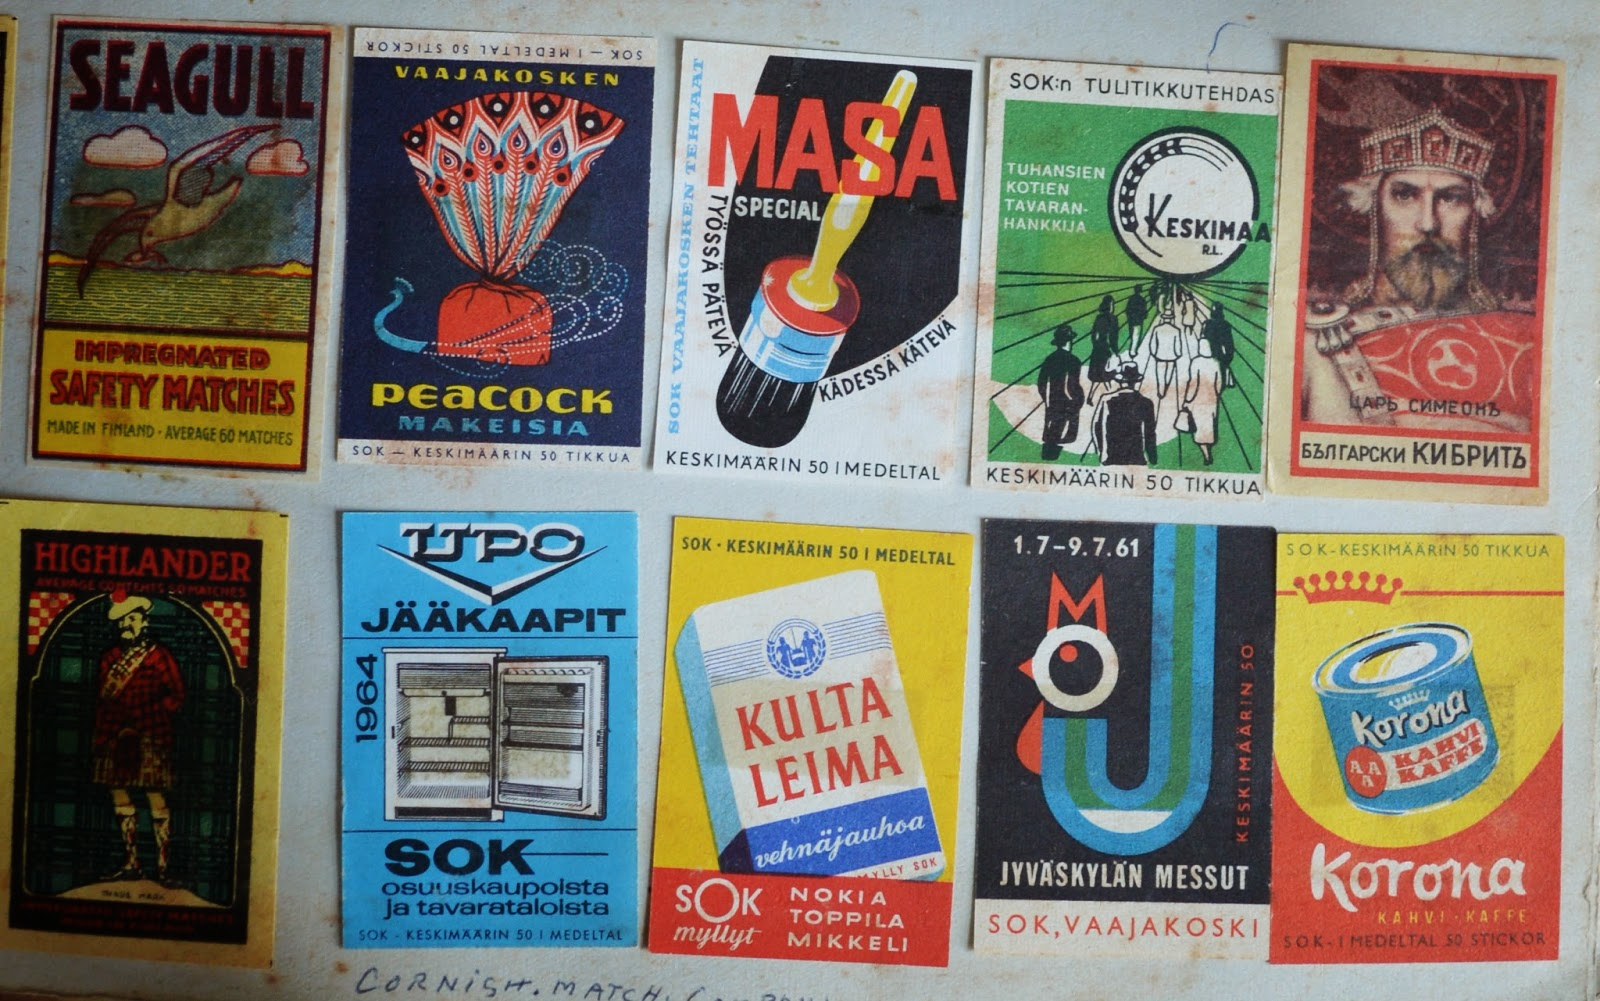 assorted matchbook and matchbox covers